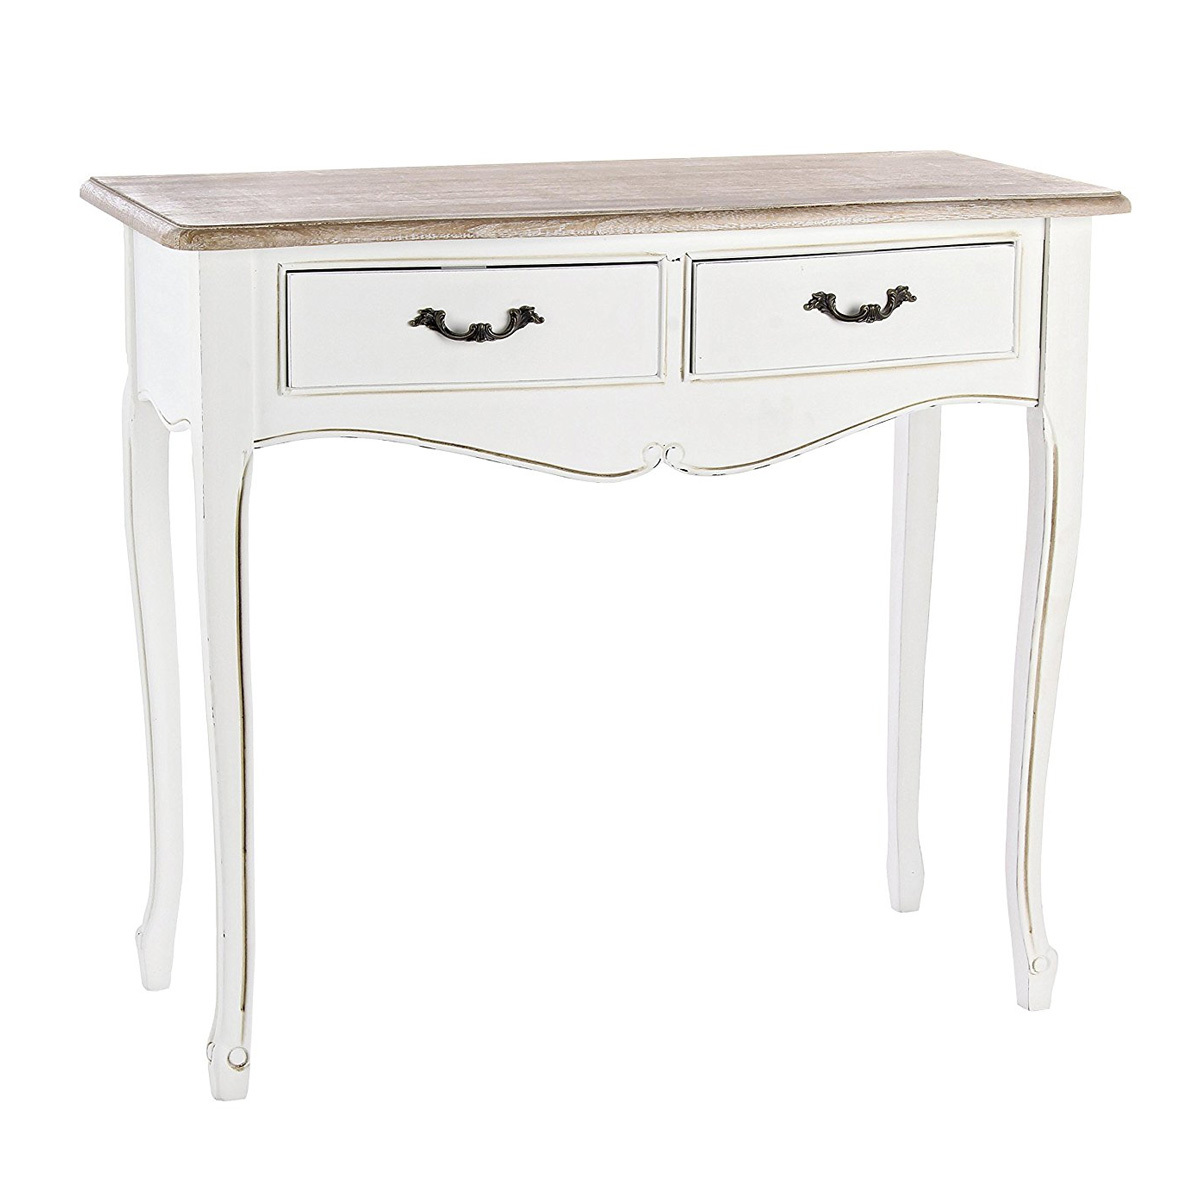 Photos 1: Bizzotto Fixed wood console l. 90 x 40 with 2 drawers 0745828